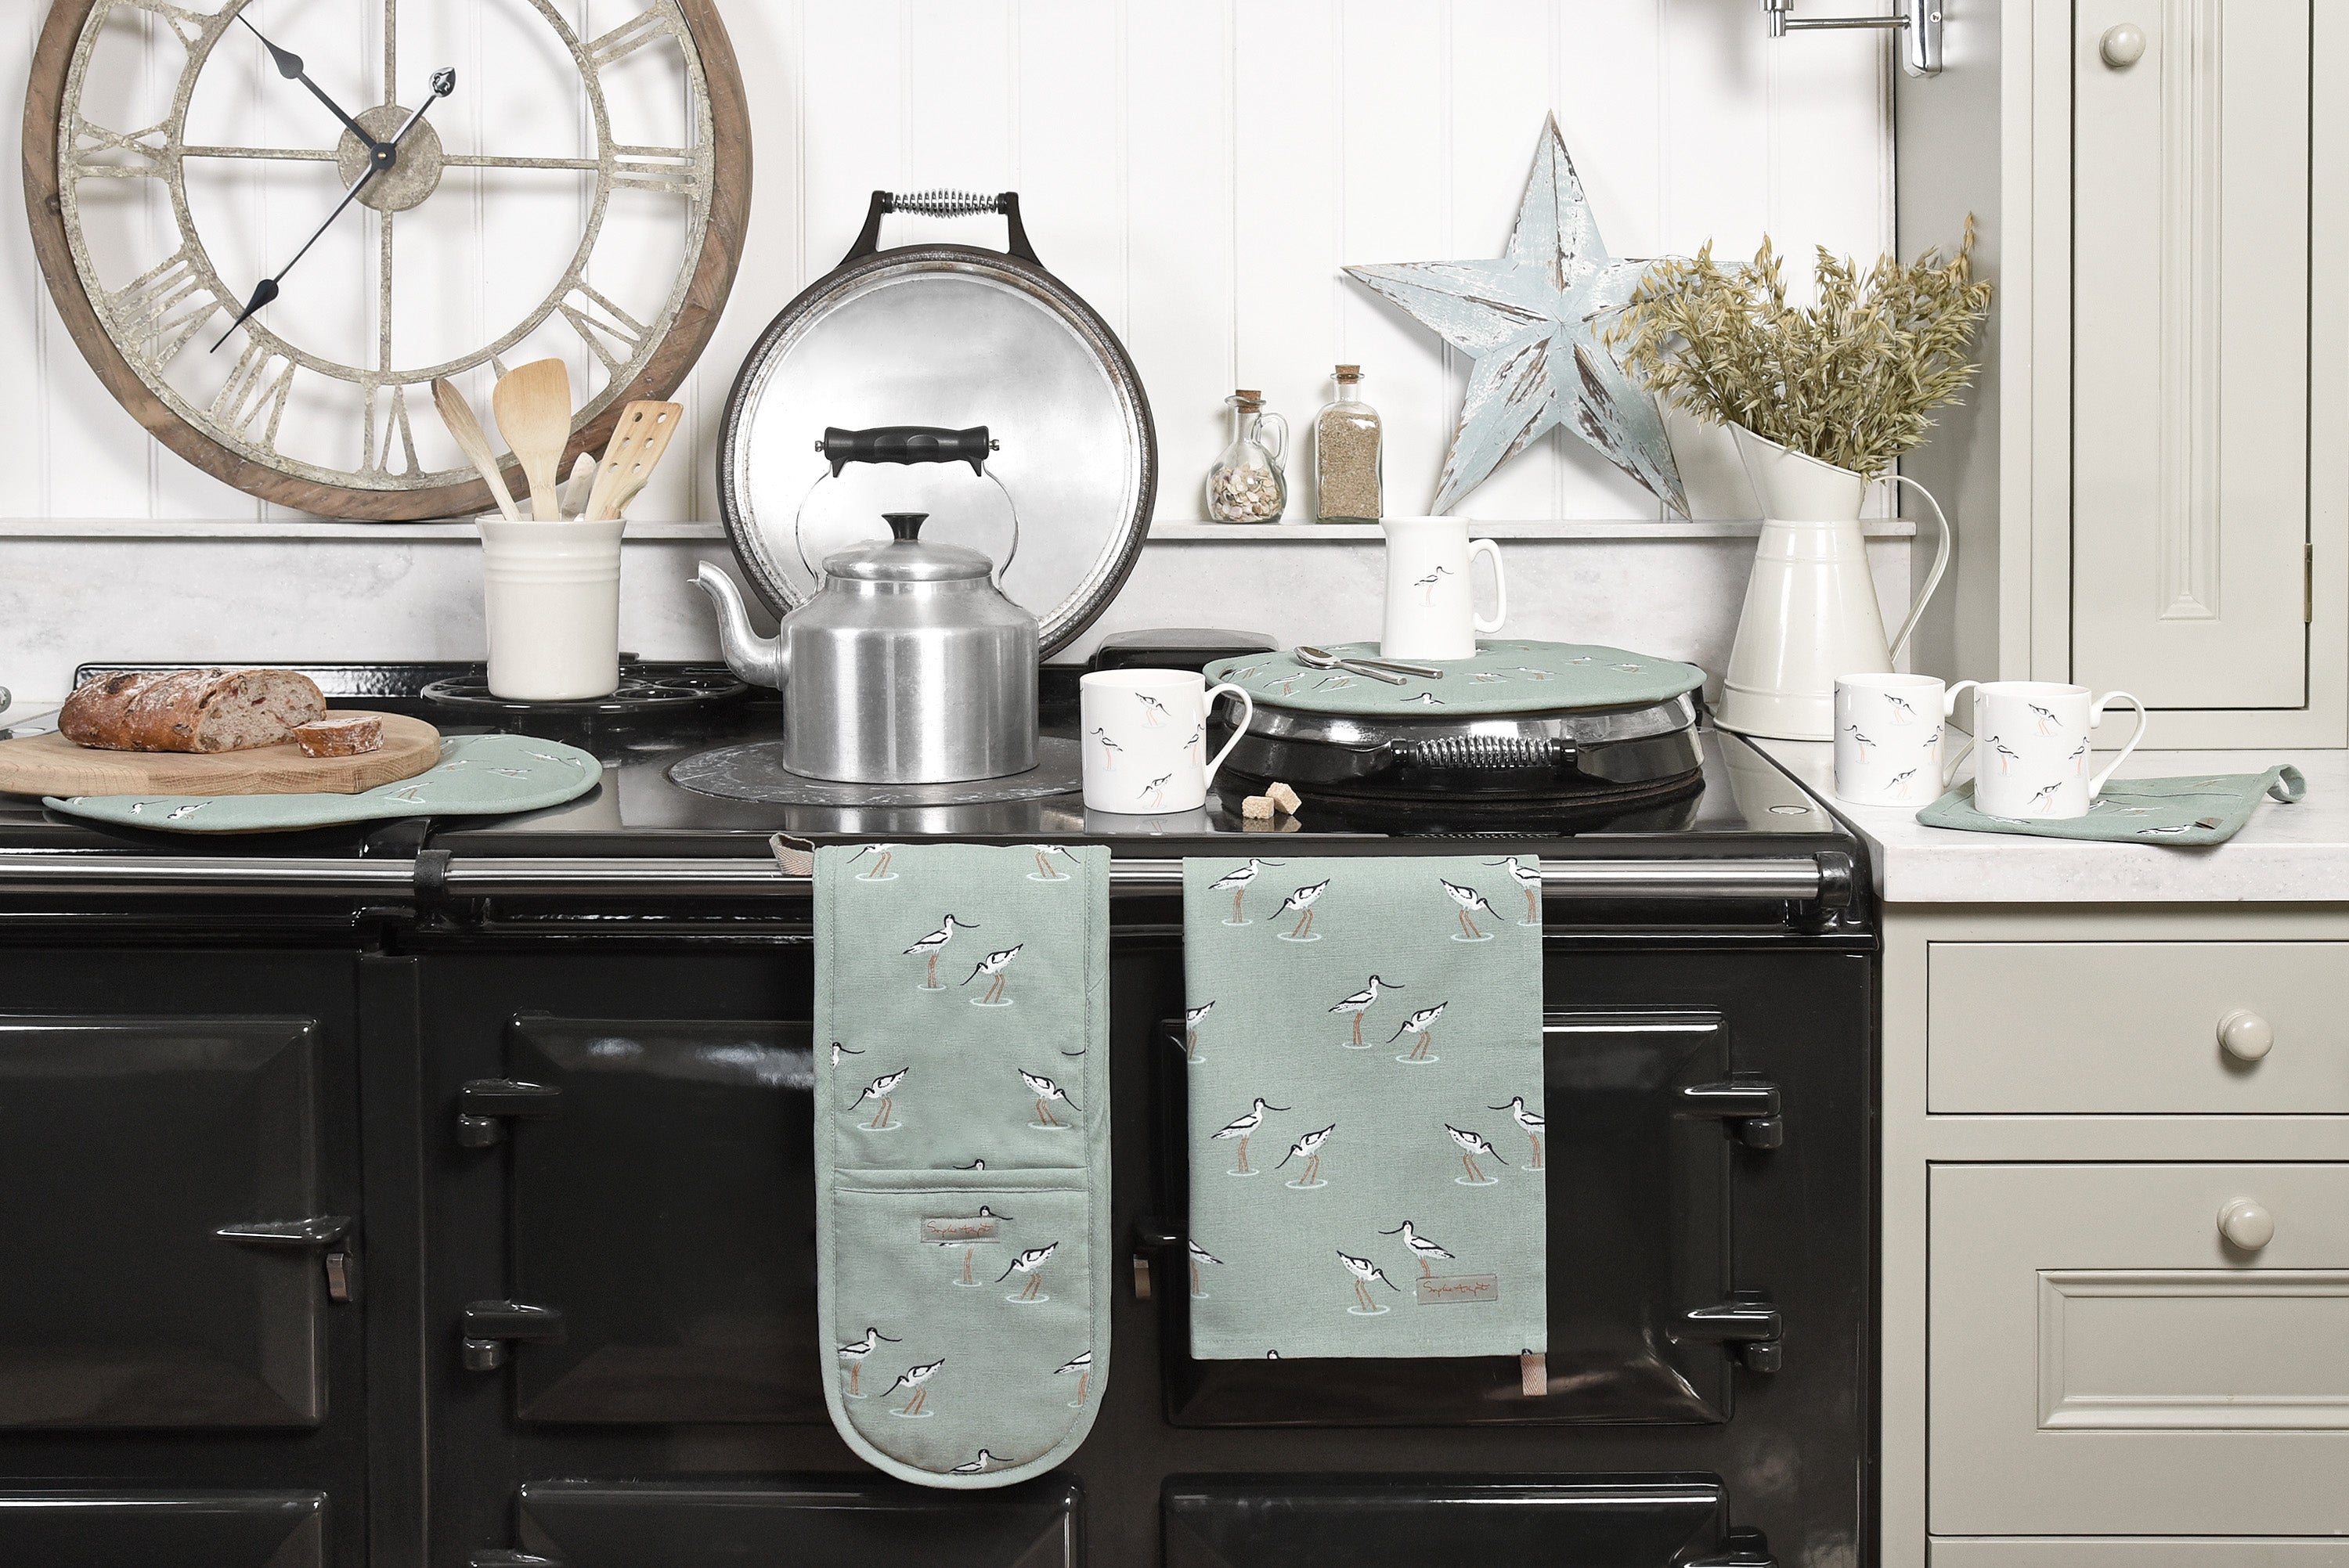 Sophie Allport's AGA is dressed in her new coastal design, with tea towel, oven gloves, hob cover and more.